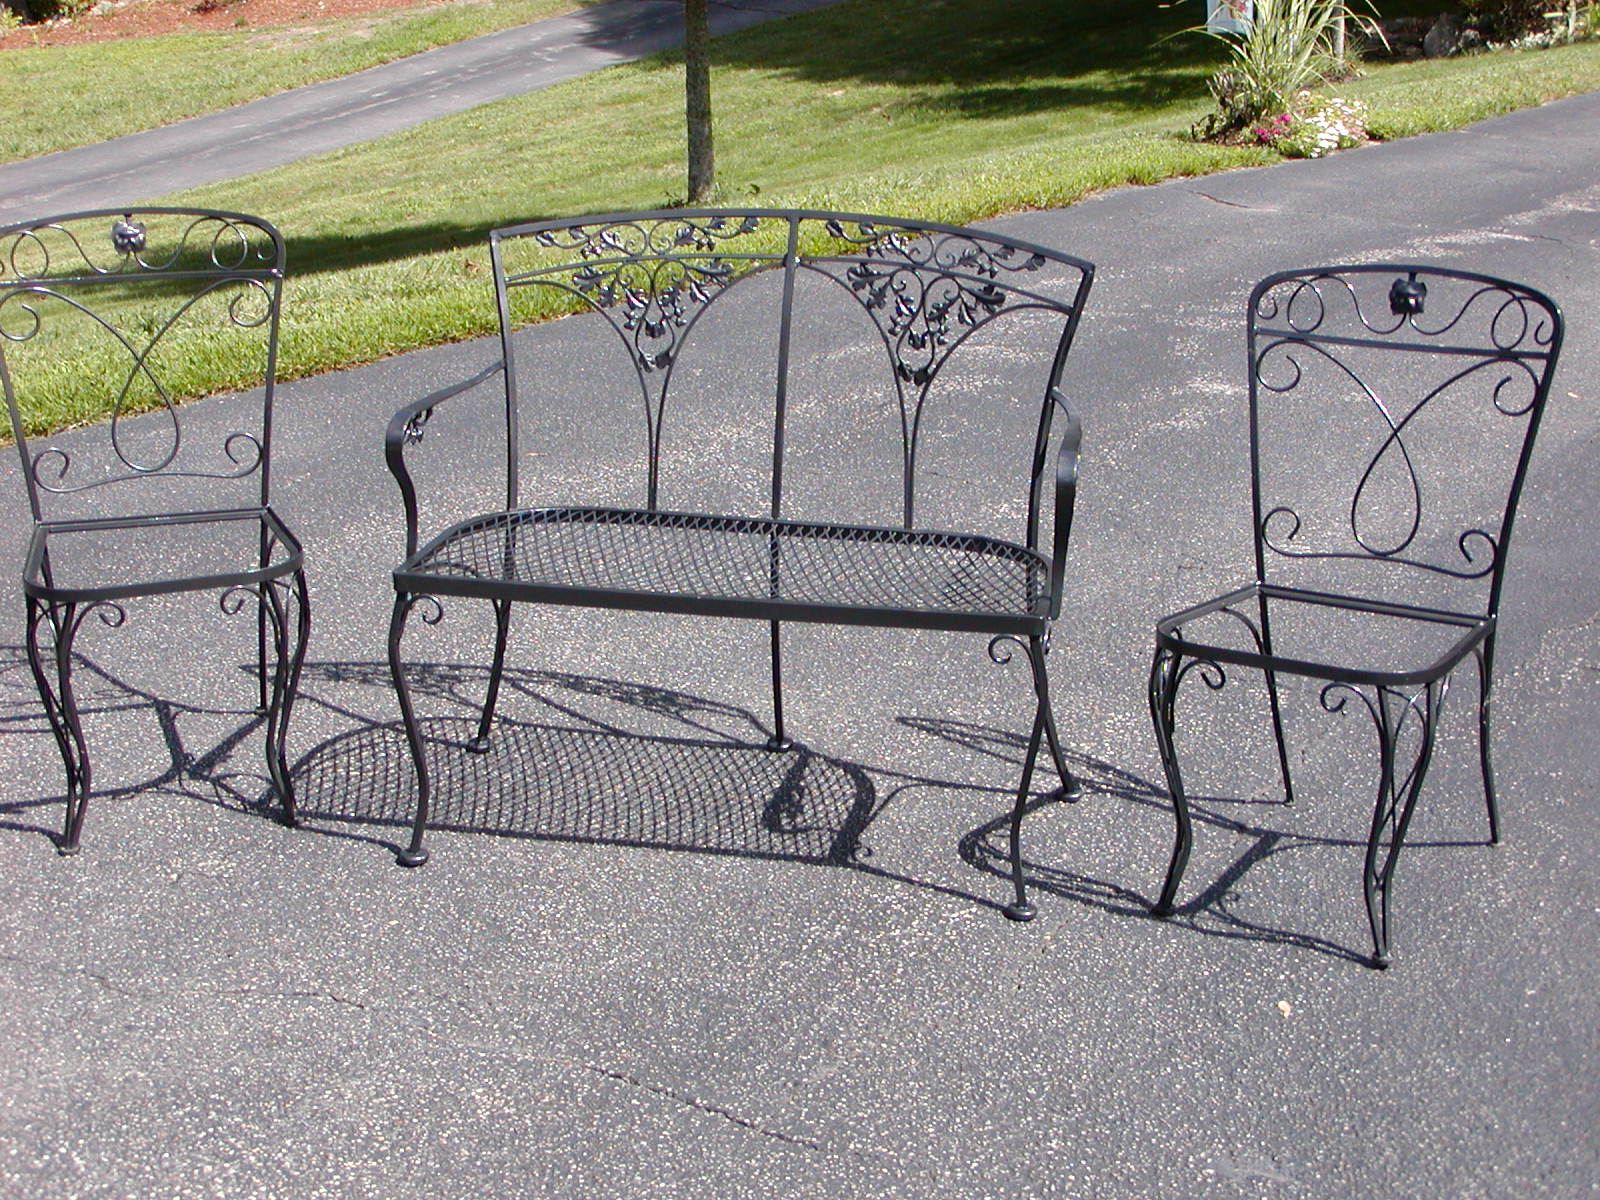 Sfrye732 blog wrought iron patio furniture refurbished for Best wrought iron patio furniture